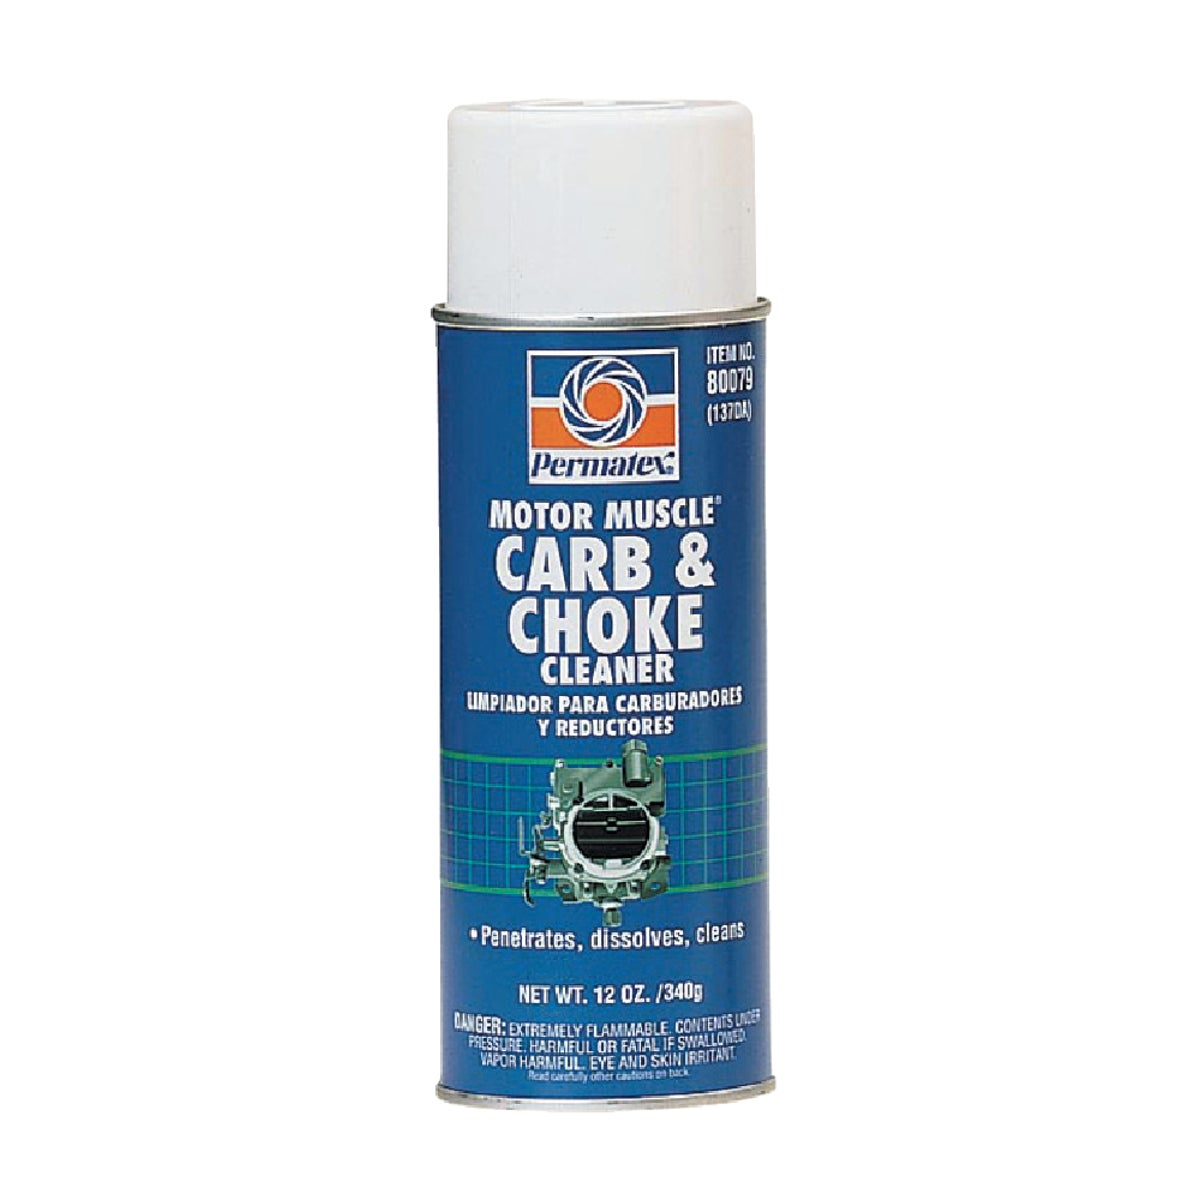 16OZ CARB&CHOKE CLEANER - 80279 by Permatex Inc